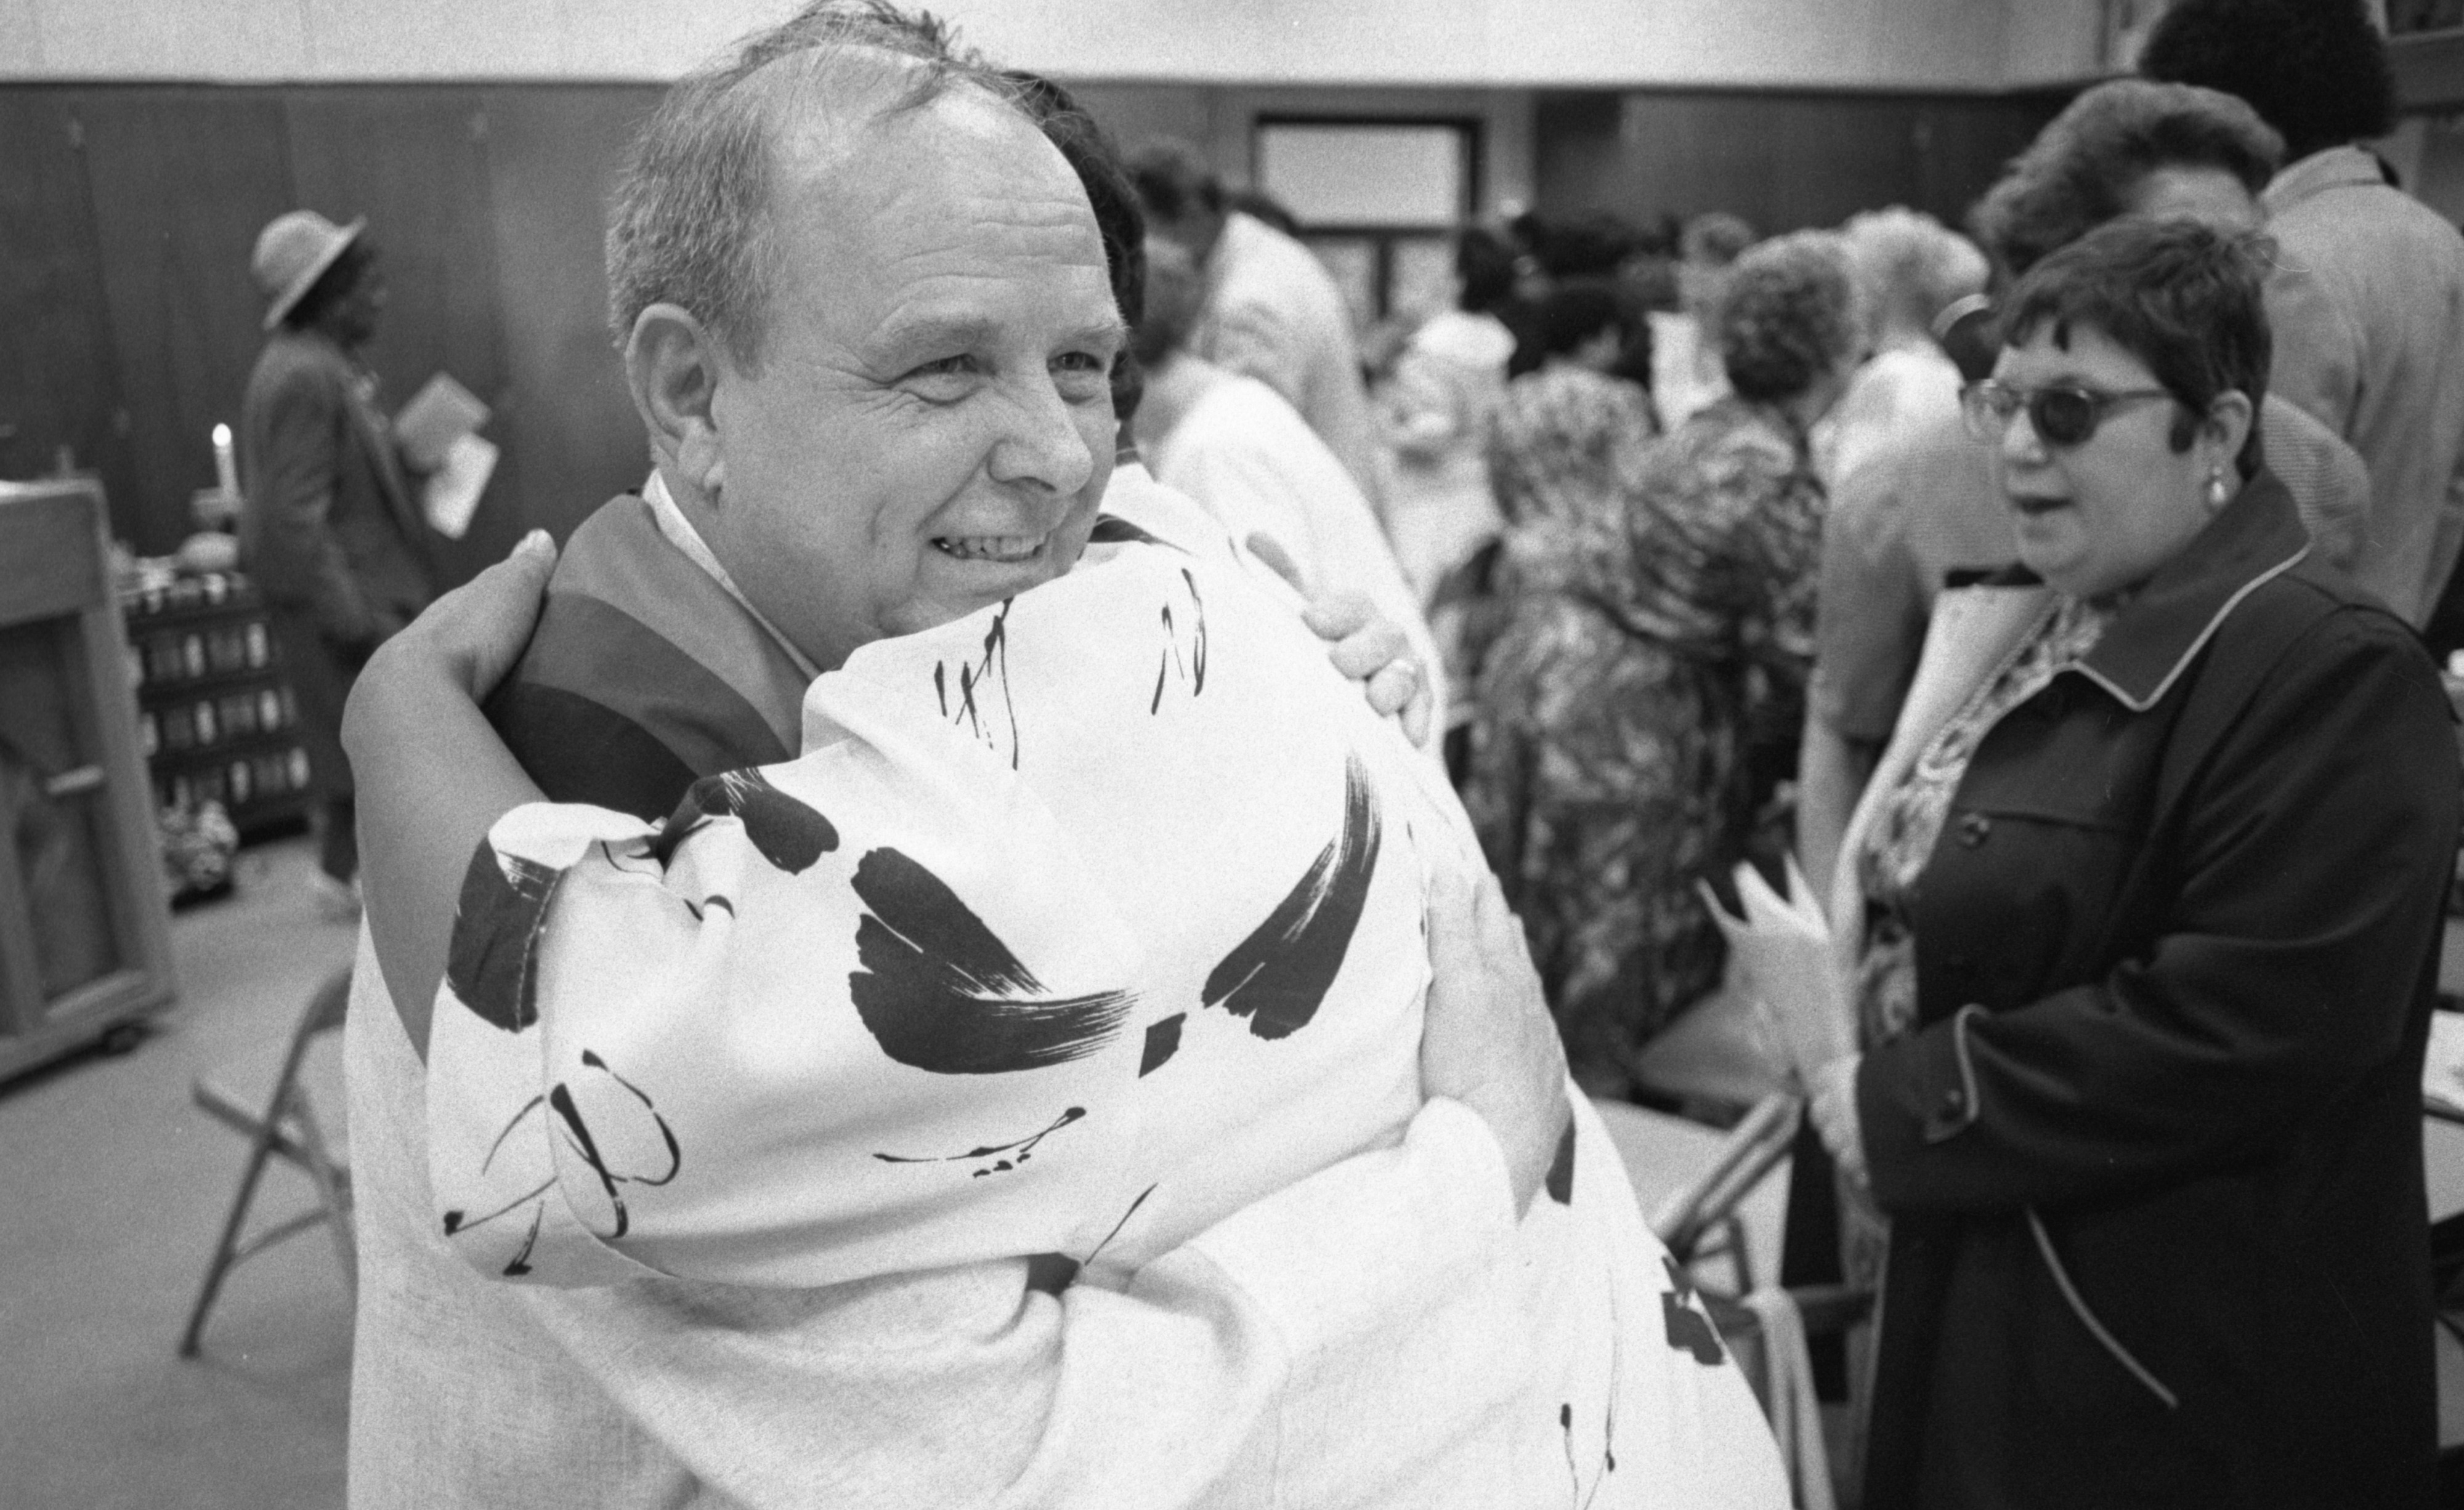 Rev. Herbert Lowe Hugs A Congregant At The First Service Of Amistad Community Church, May 1991 image